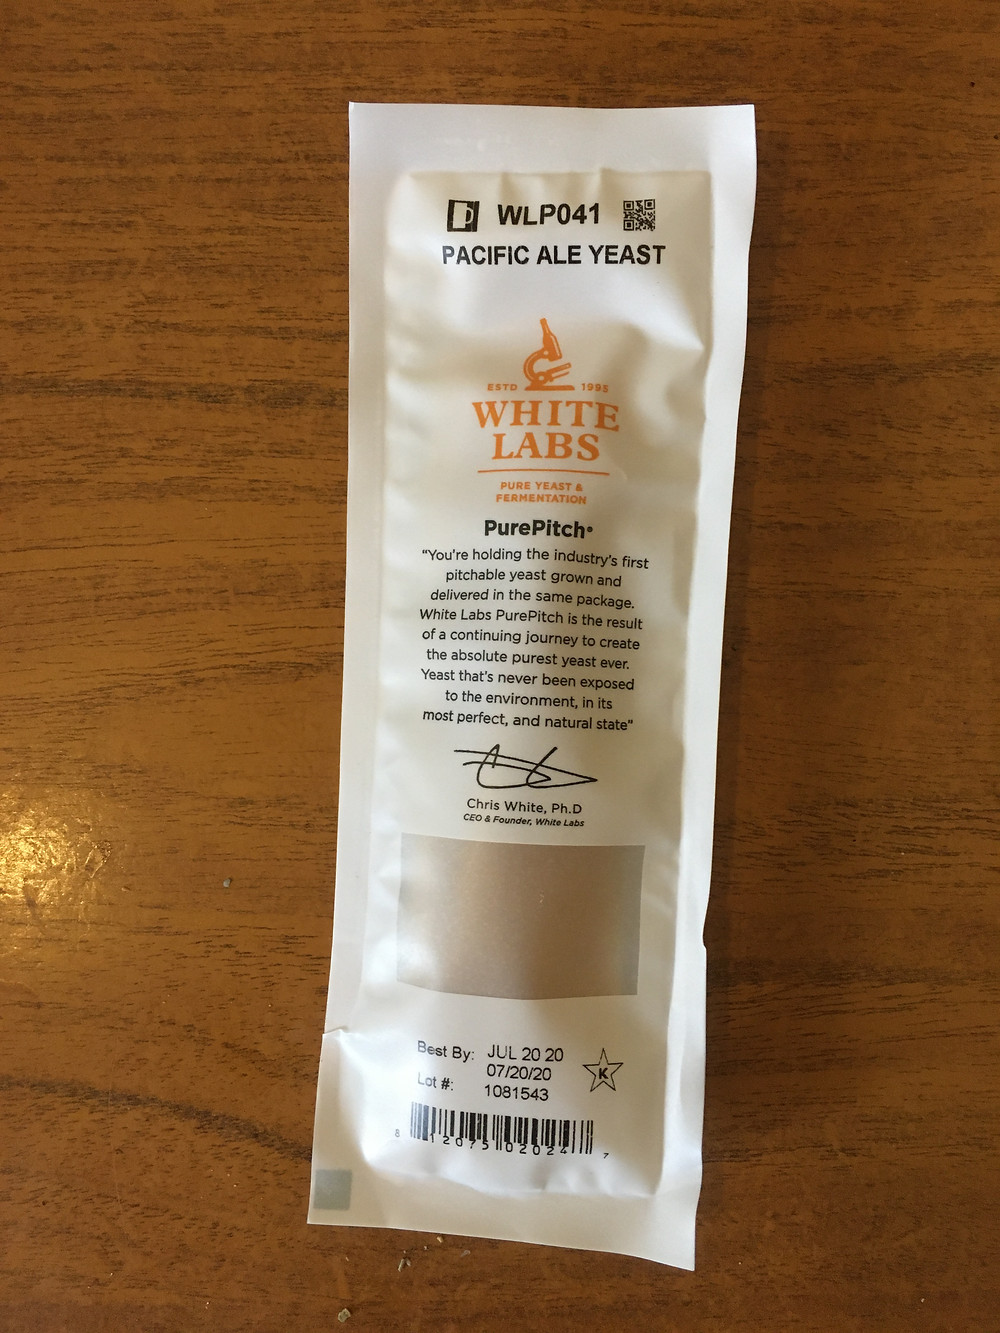 White labs WLP041 yeast